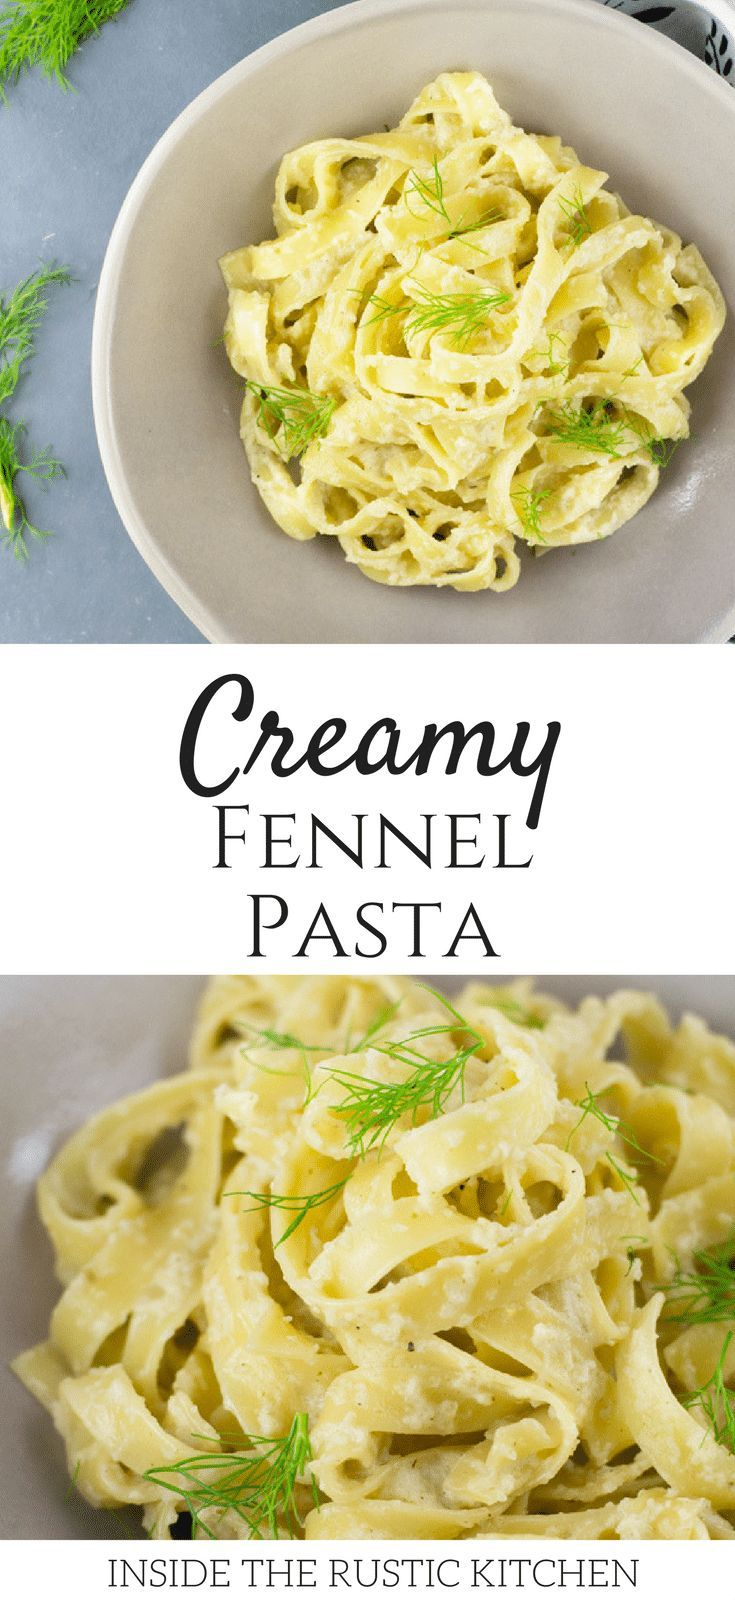 A delicious creamy roasted fennel pasta made with a comforting, creamy, garlic fennel sauce and tossed through delicious fettuccine pasta. insidetherustickitchen.com